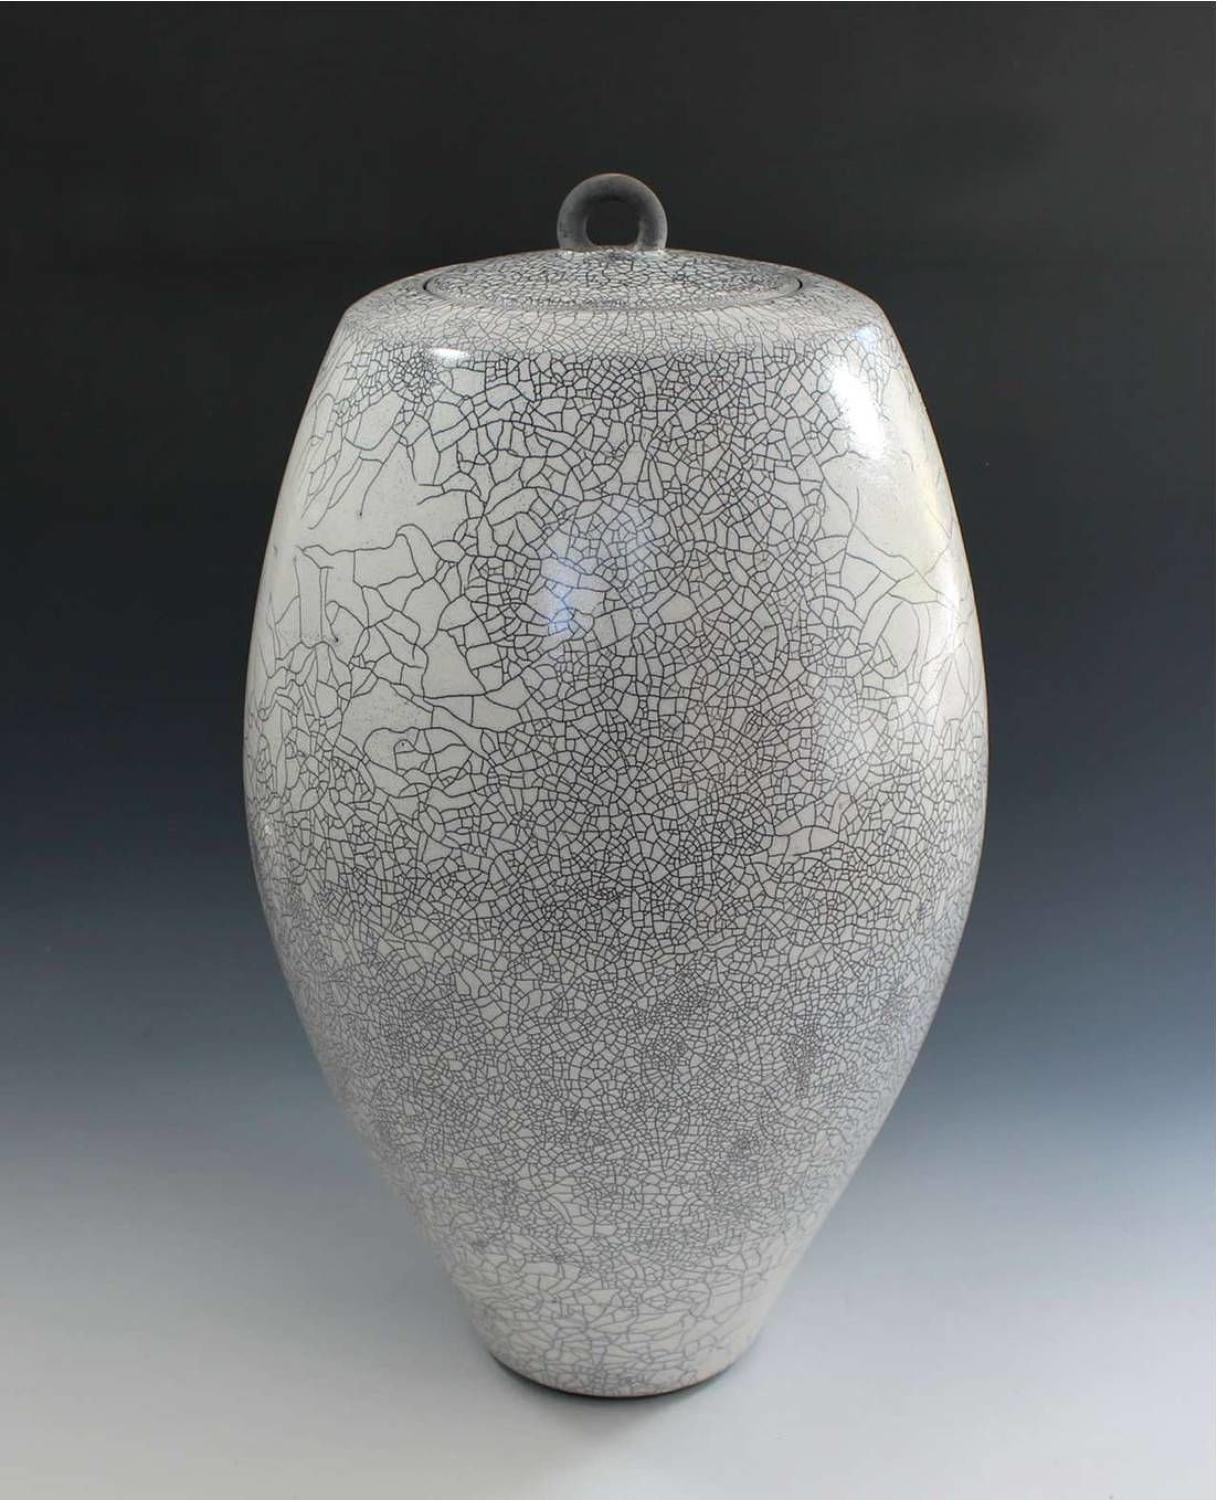 Peter sparrey. Raku lidded Jar with white crackle tin glaze.